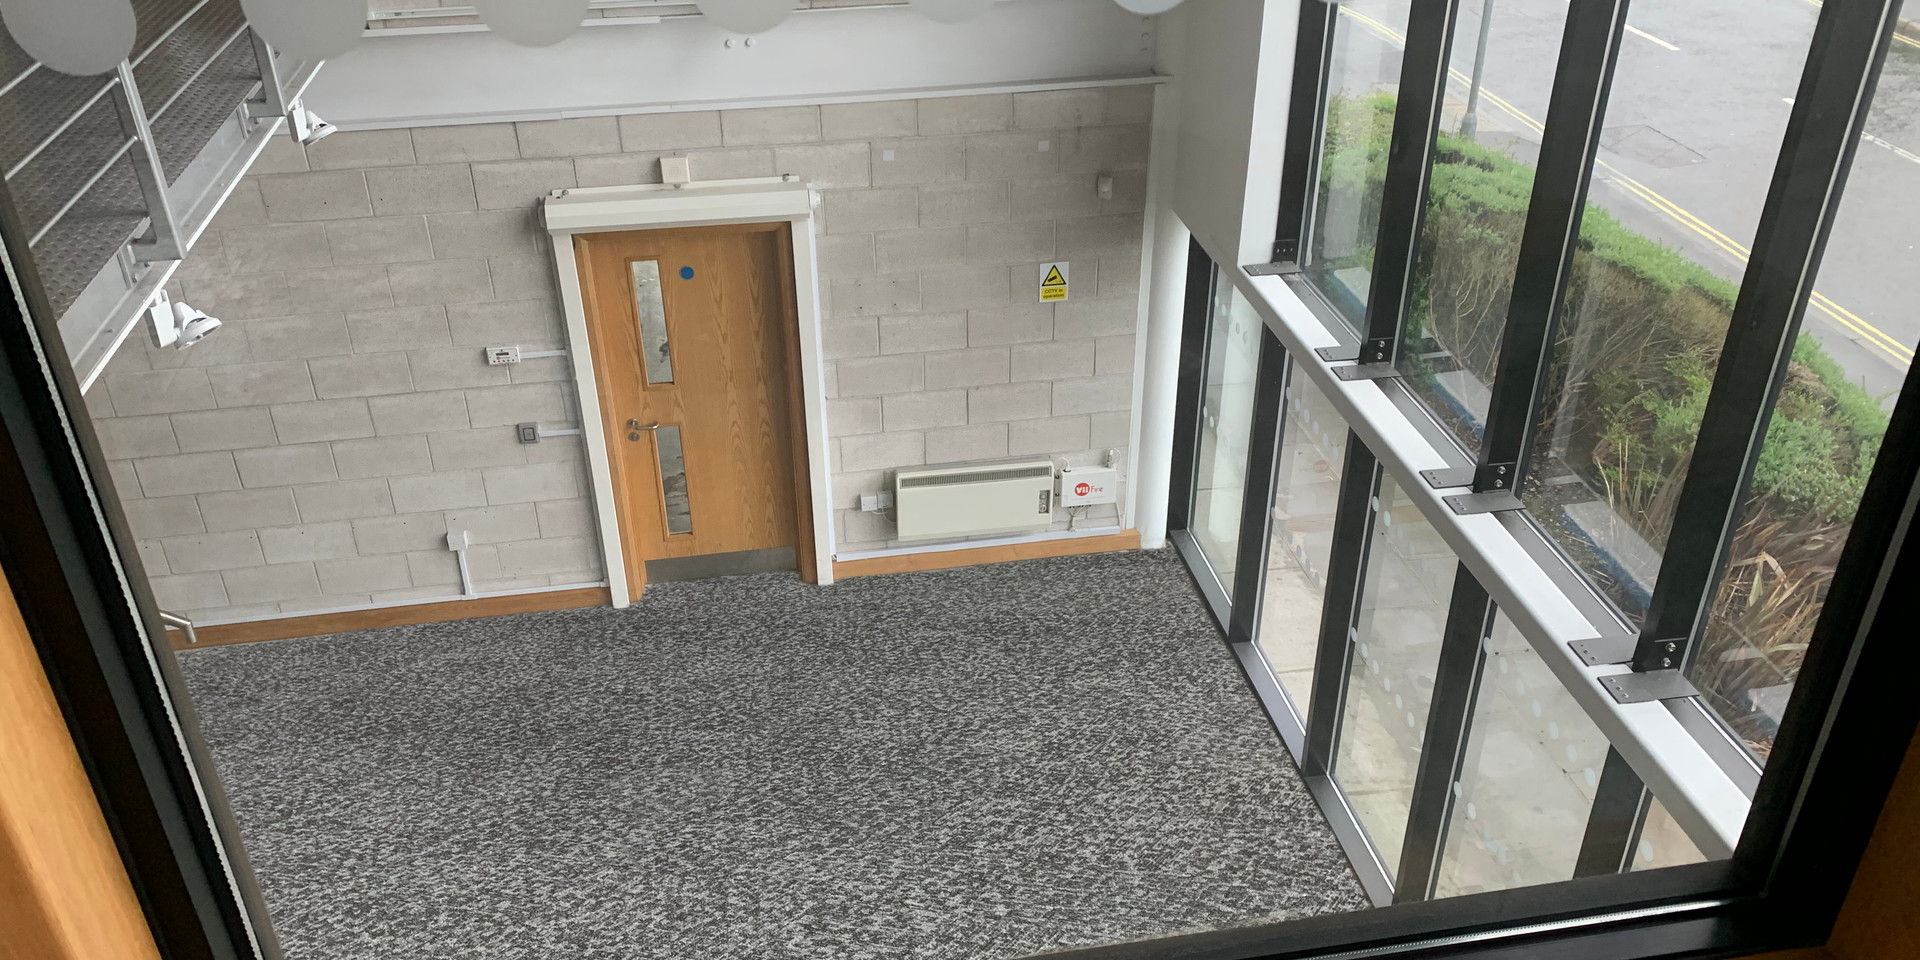 5 Penner Road, Reception Atrium from Executive Office 2